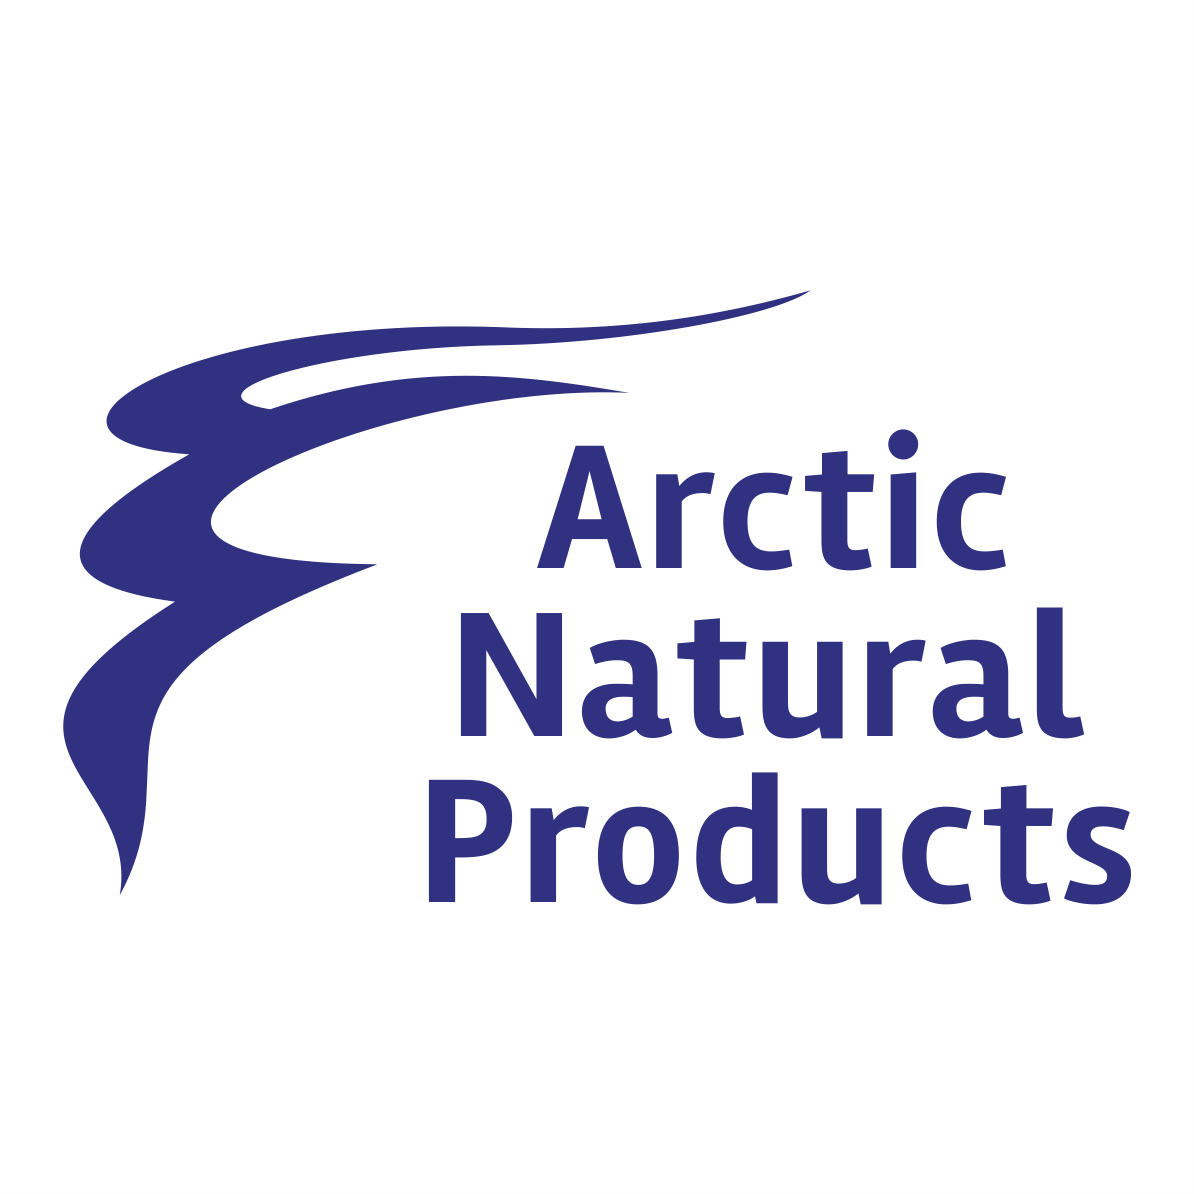 Arctic Natural Products